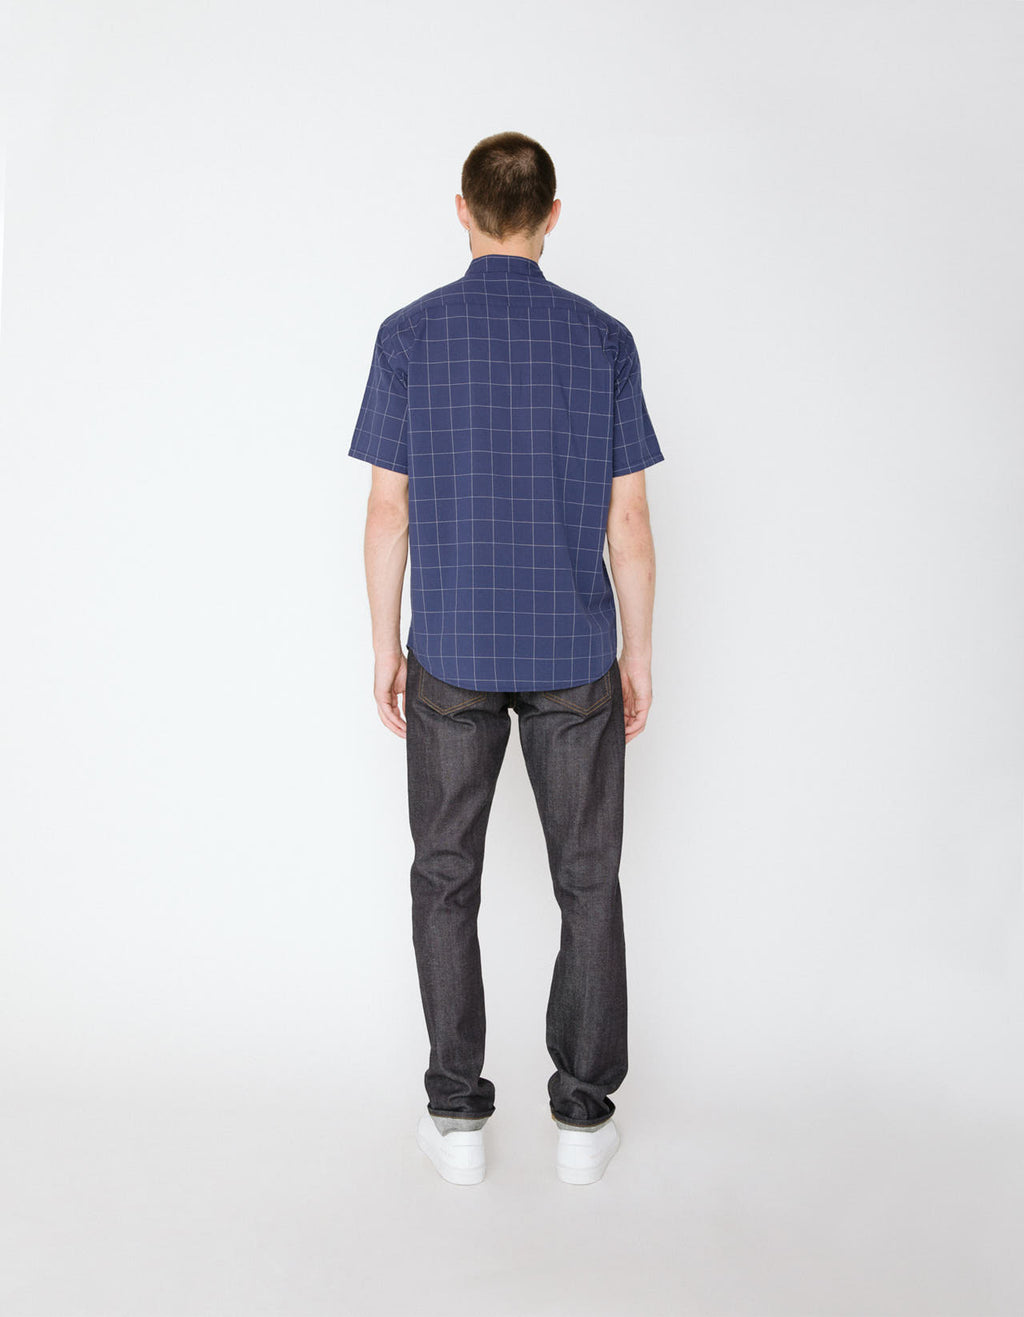 The Raymoore Shirt in Blue Windowpane